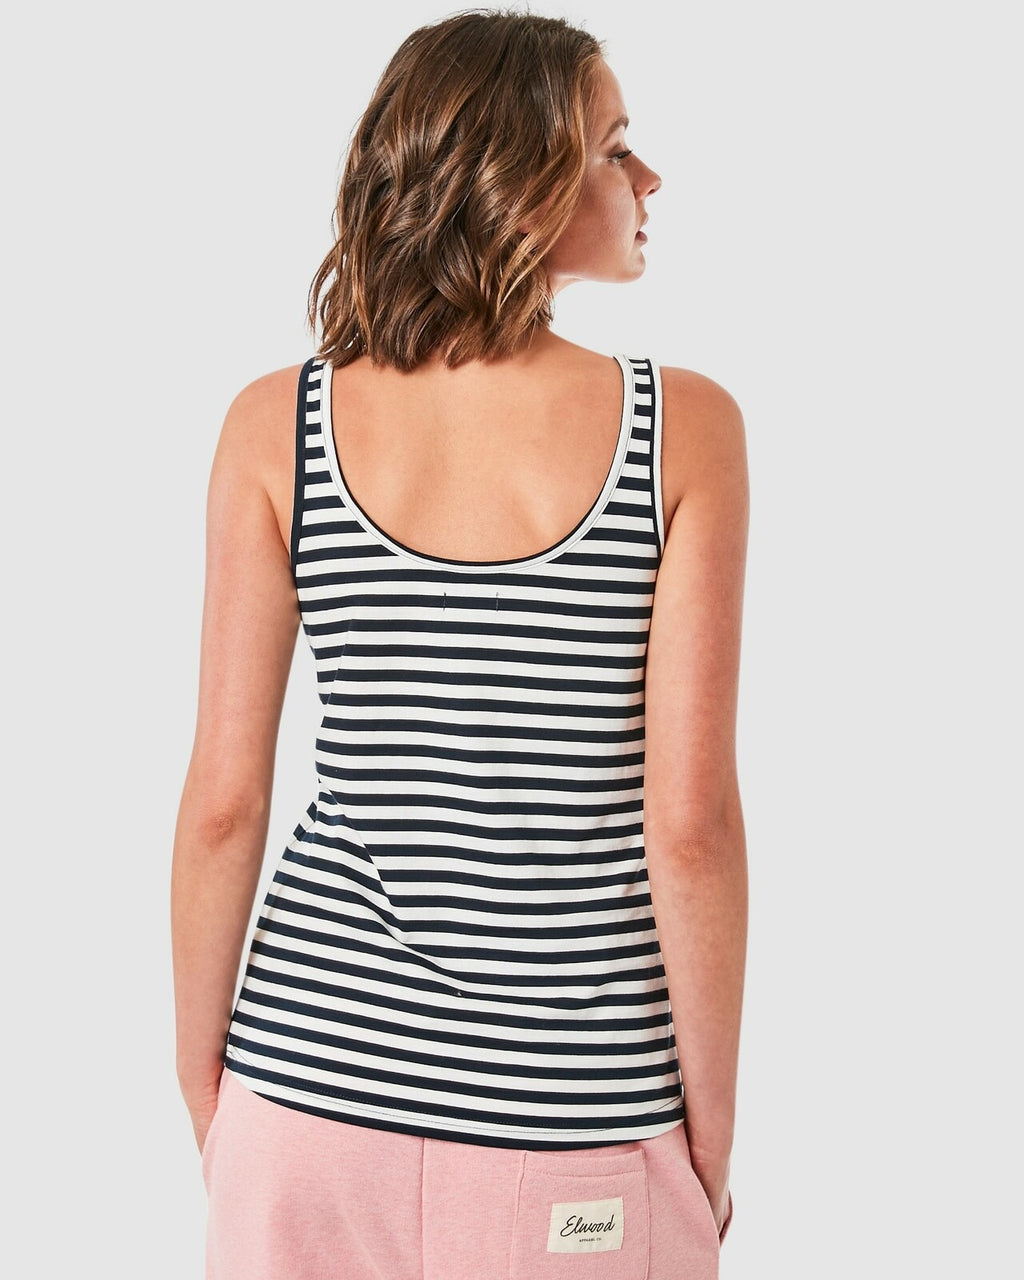 Elwood / Cally Singlet / Navy/White Stripe